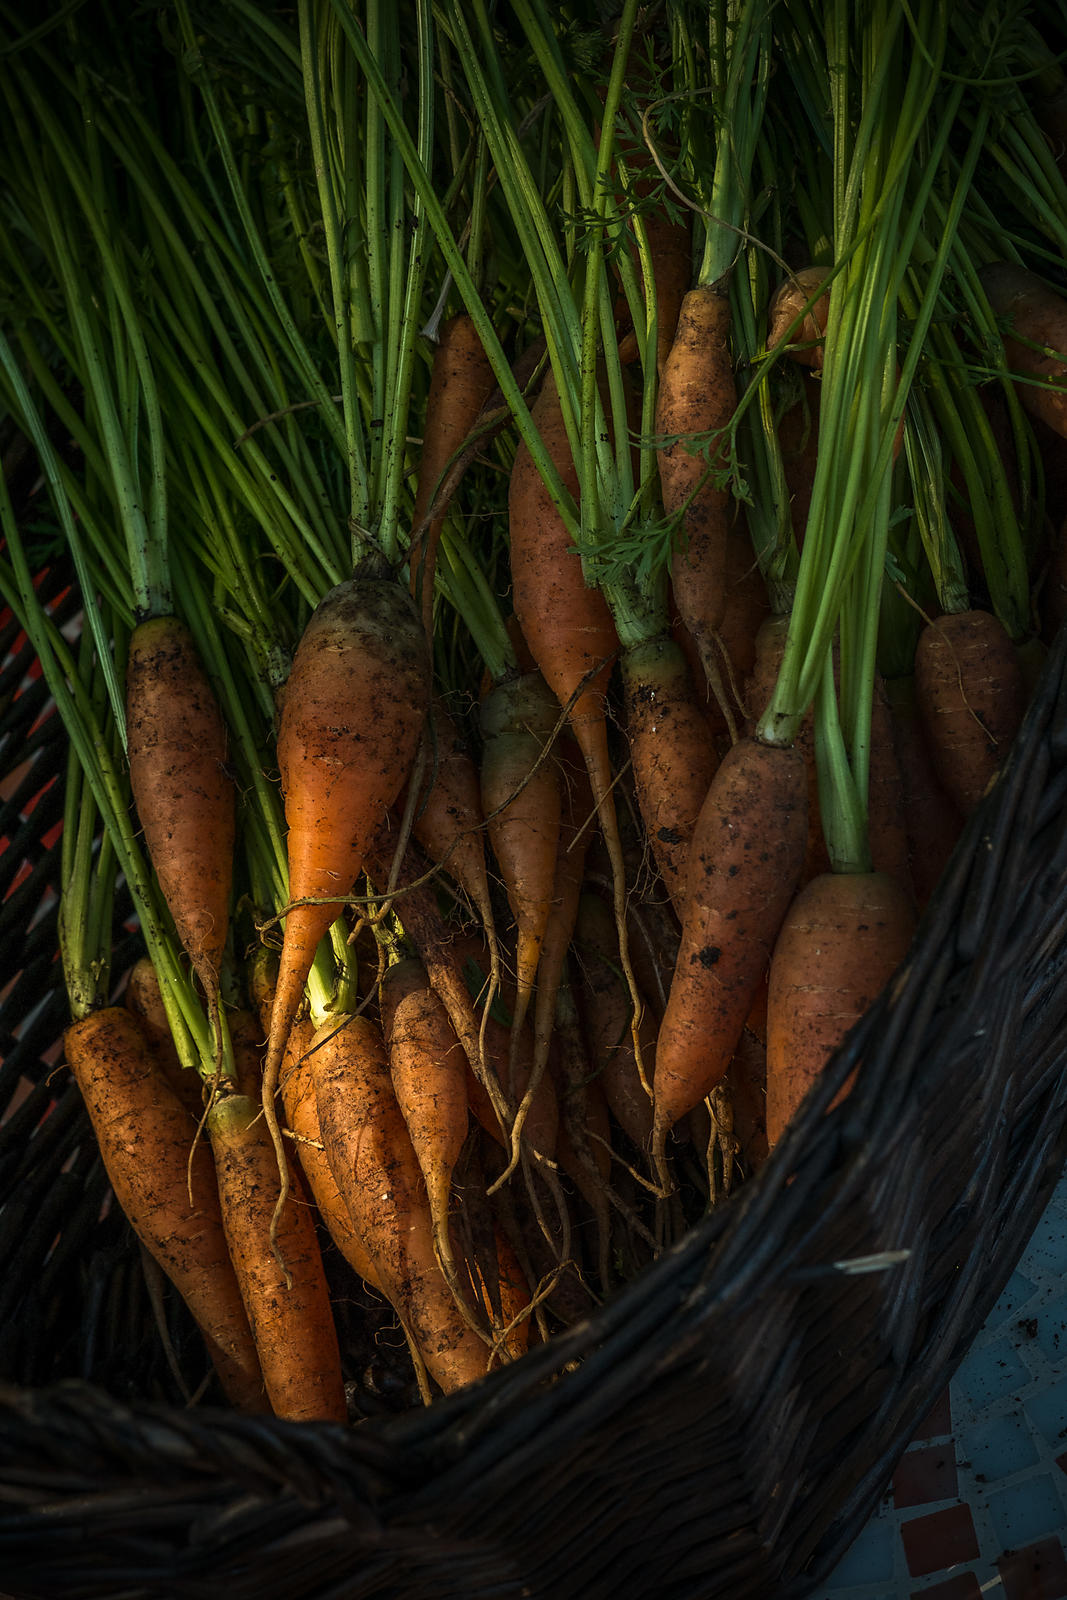 Farm to table photography by Jason Tinacci